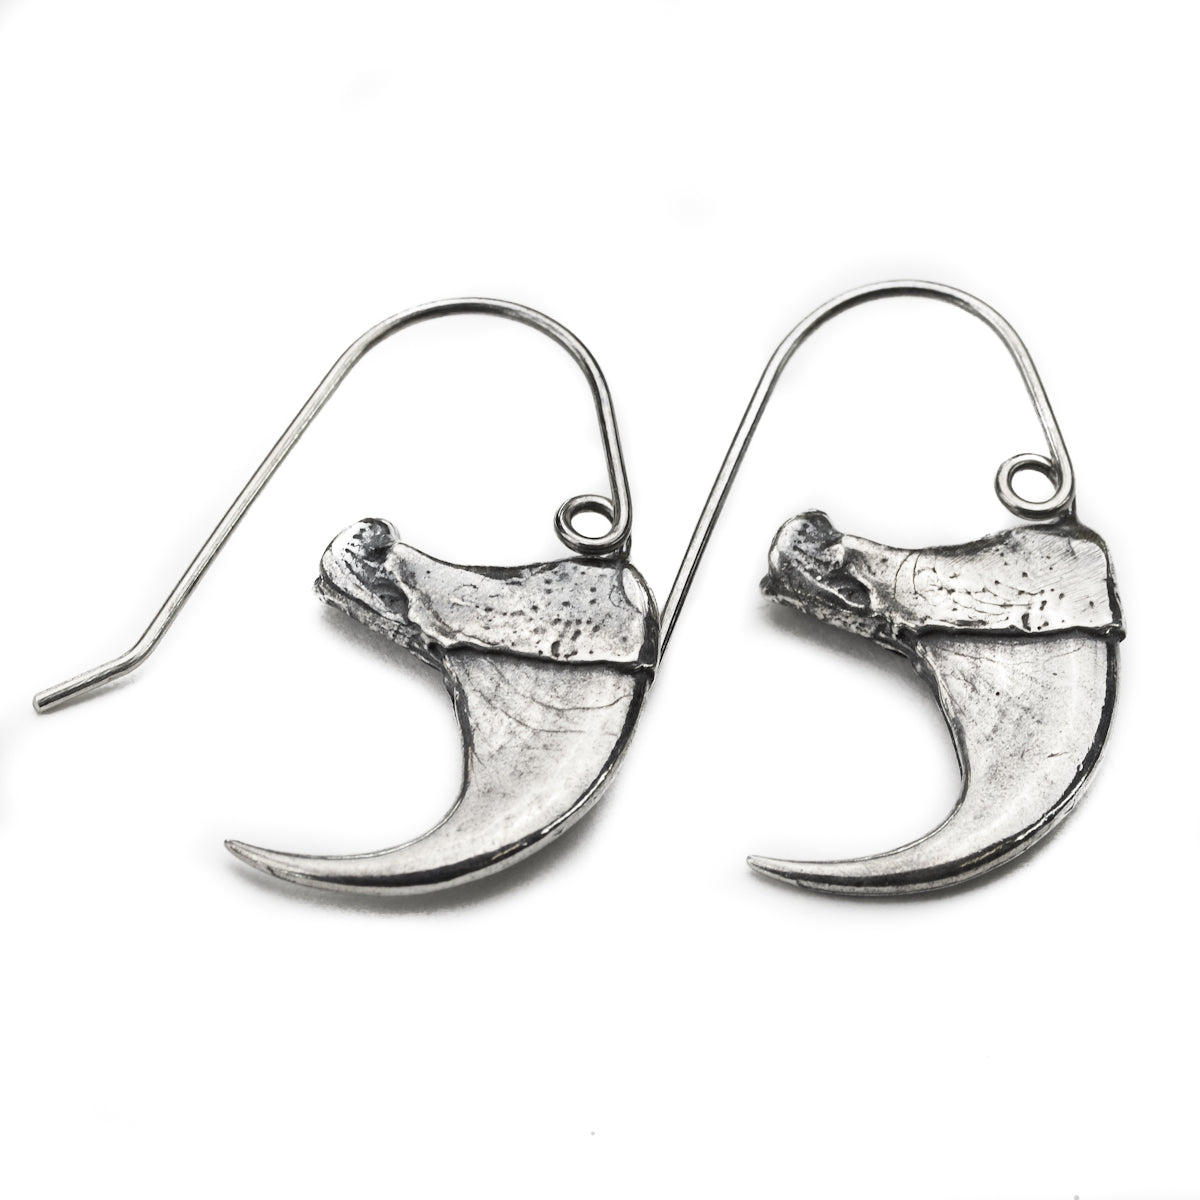 Bobcat Claw Sterling Silver Earrings